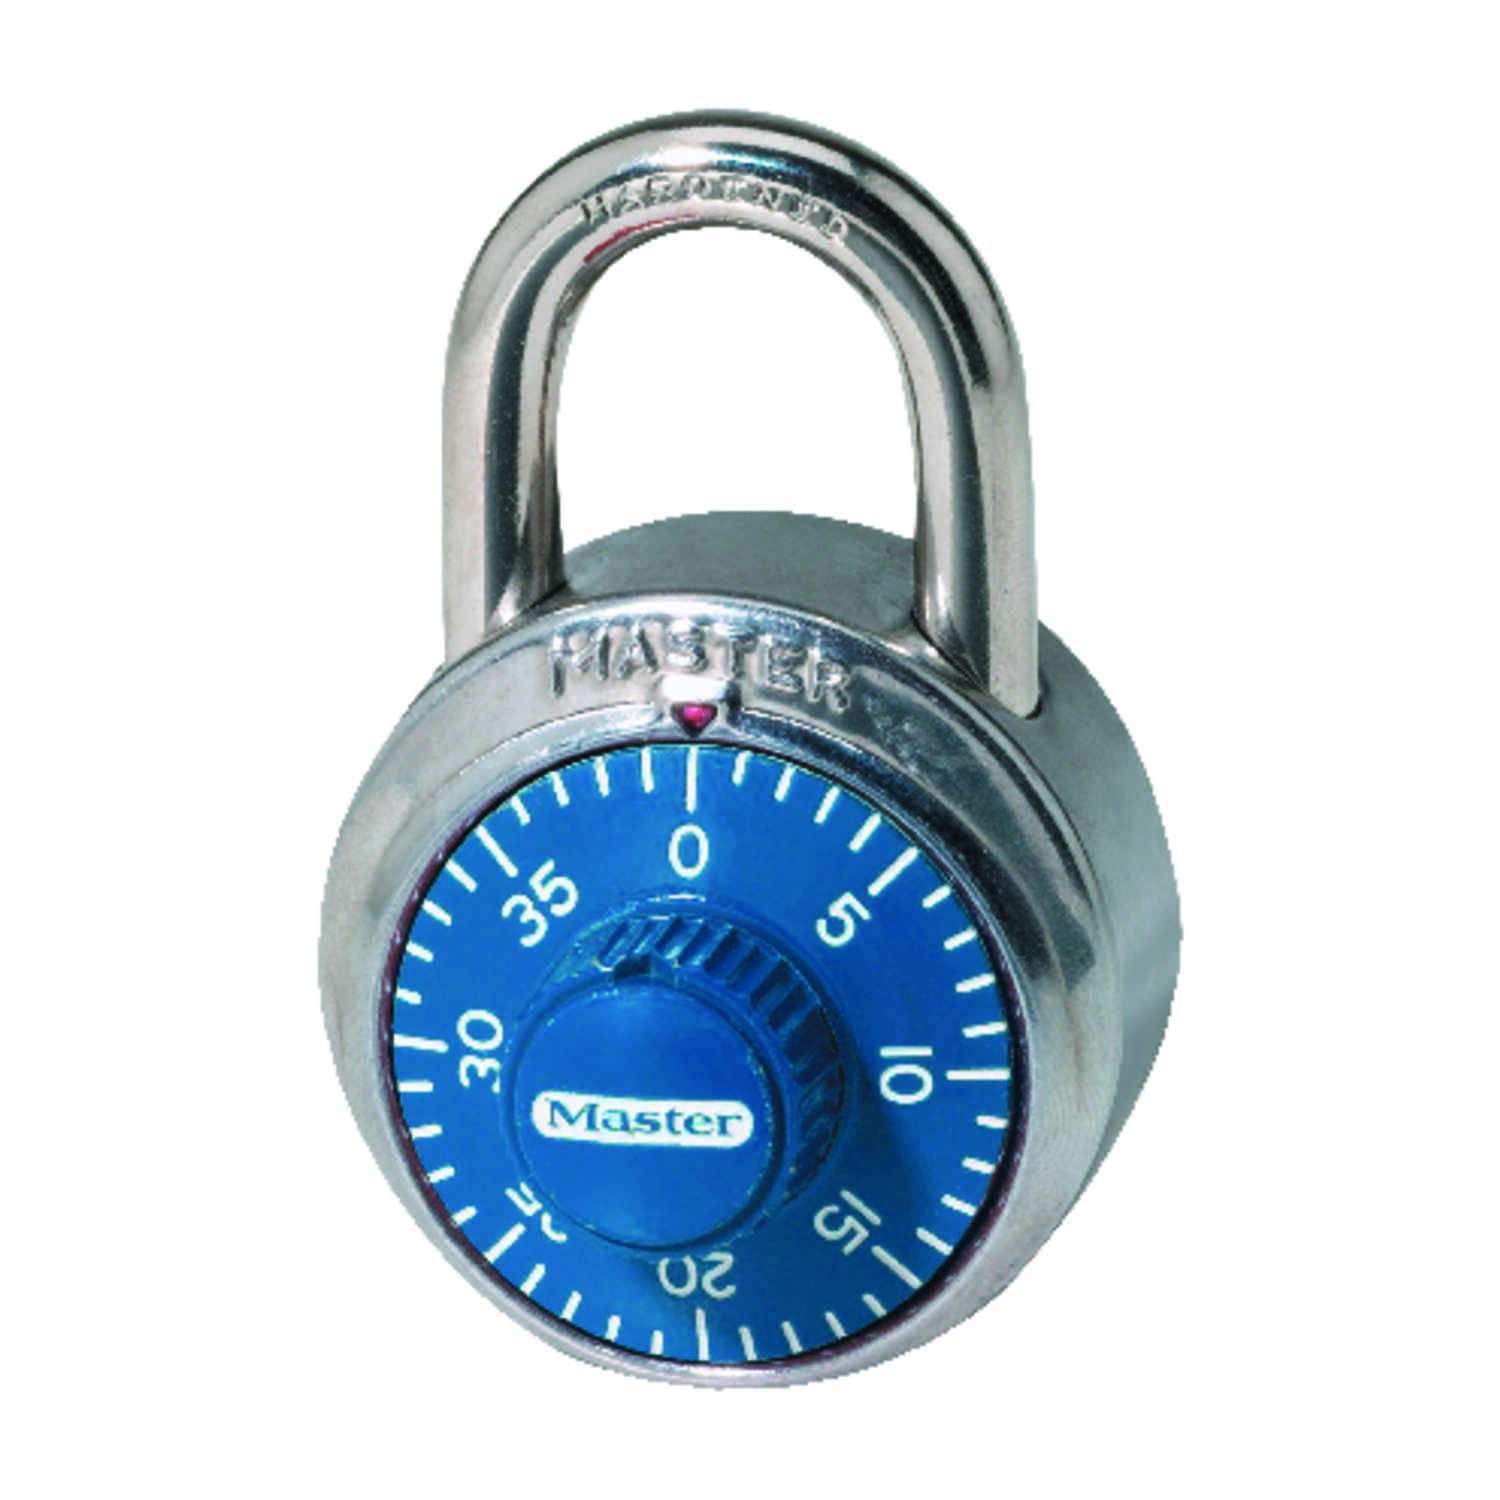 Master Lock  2 in. H x 7/8 in. W x 1-7/8 in. L Steel  Anti-Shim Technology  Combination Padlock  1 e